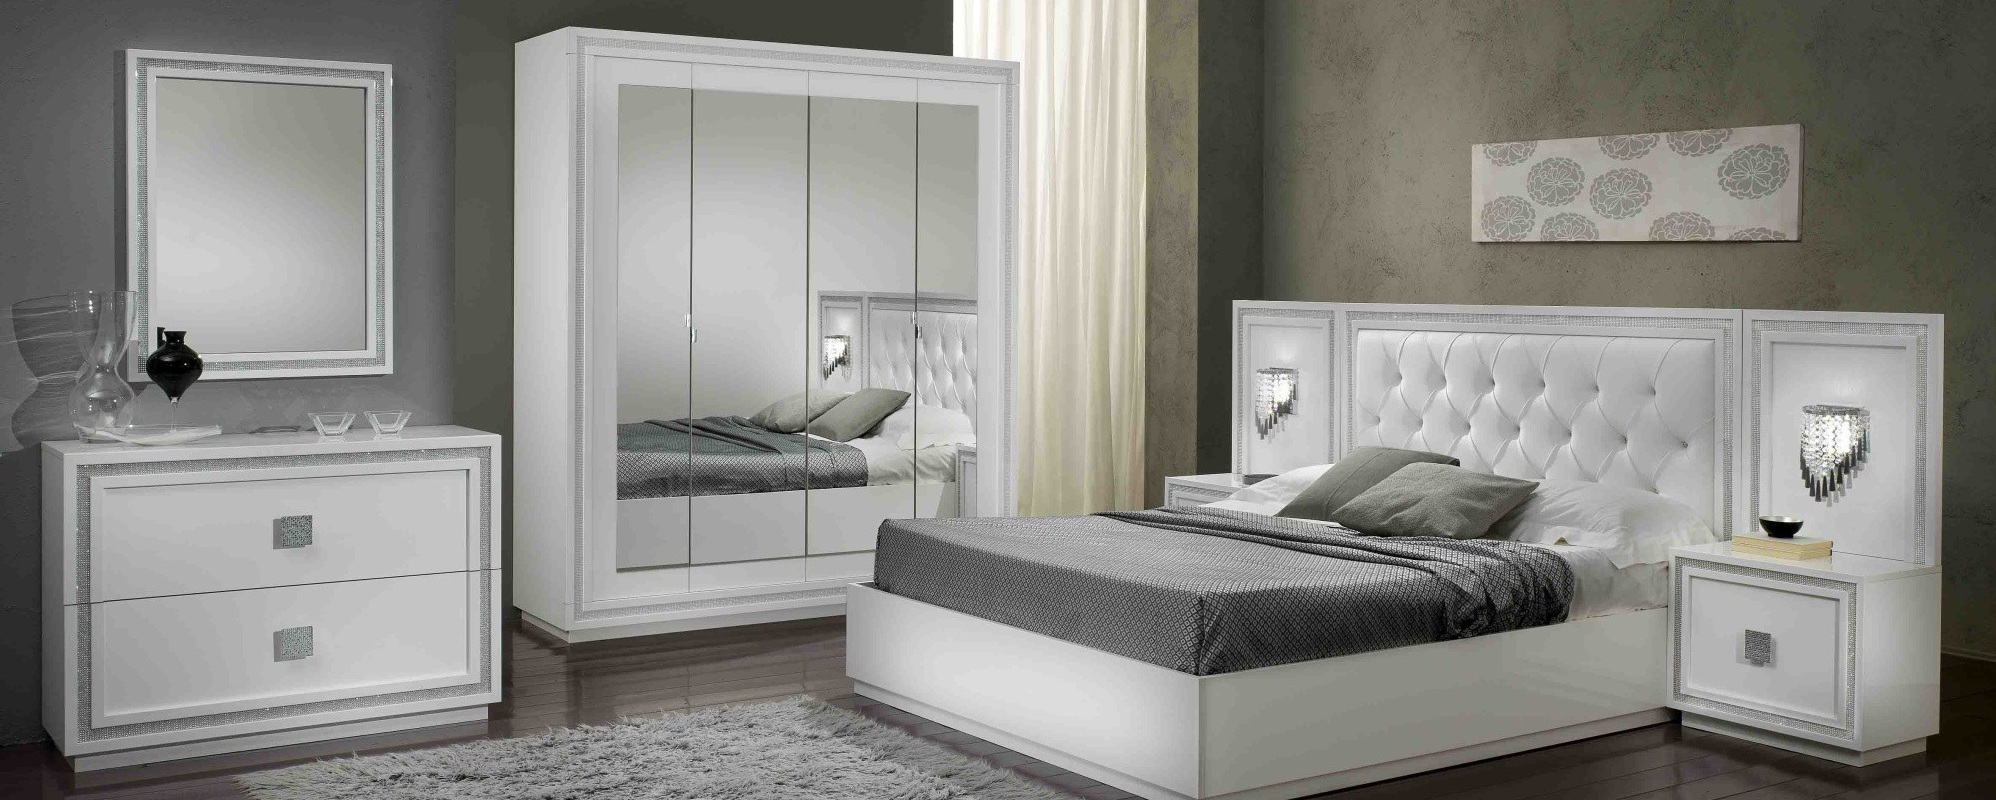 Conforama chambre for Chambre de fille conforama